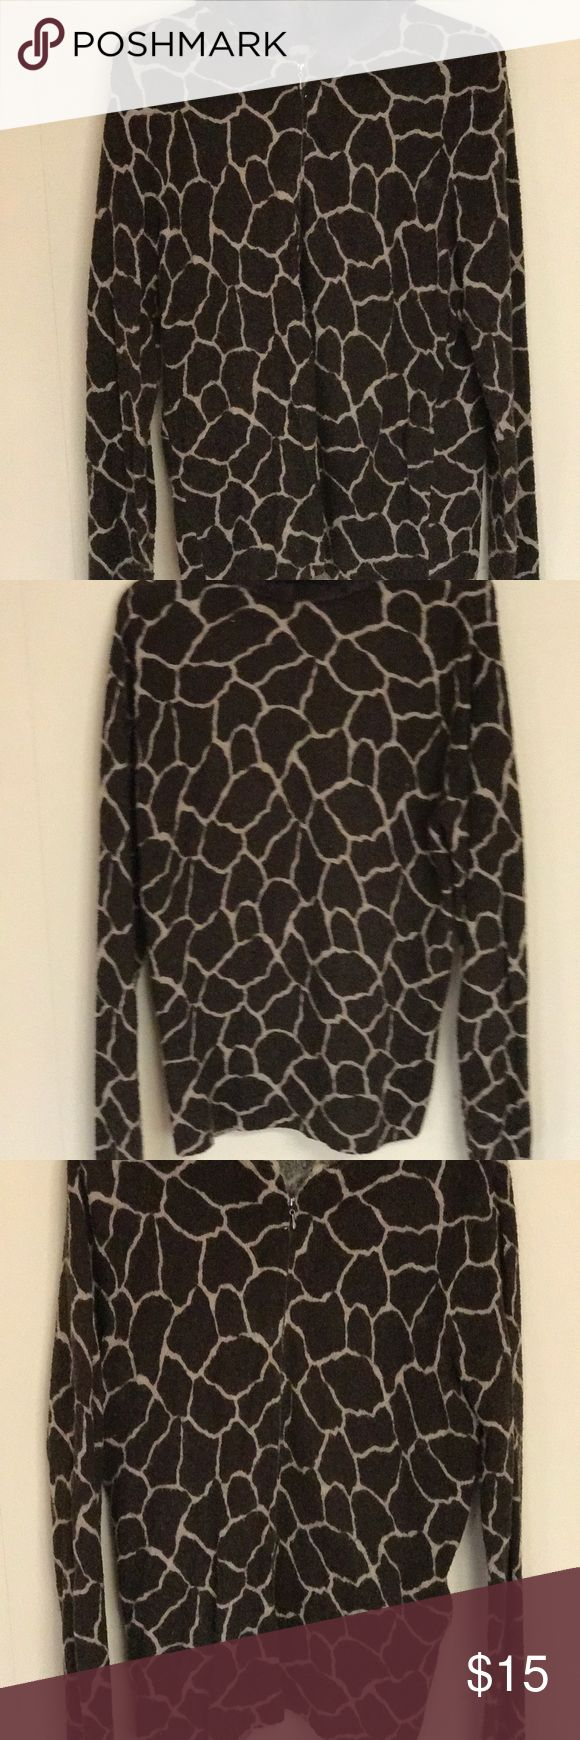 Pretty giraffe-print zip-front sweater Great condition! Warm and cozy with detachable faux-fur collar. Karen Scott Sweaters